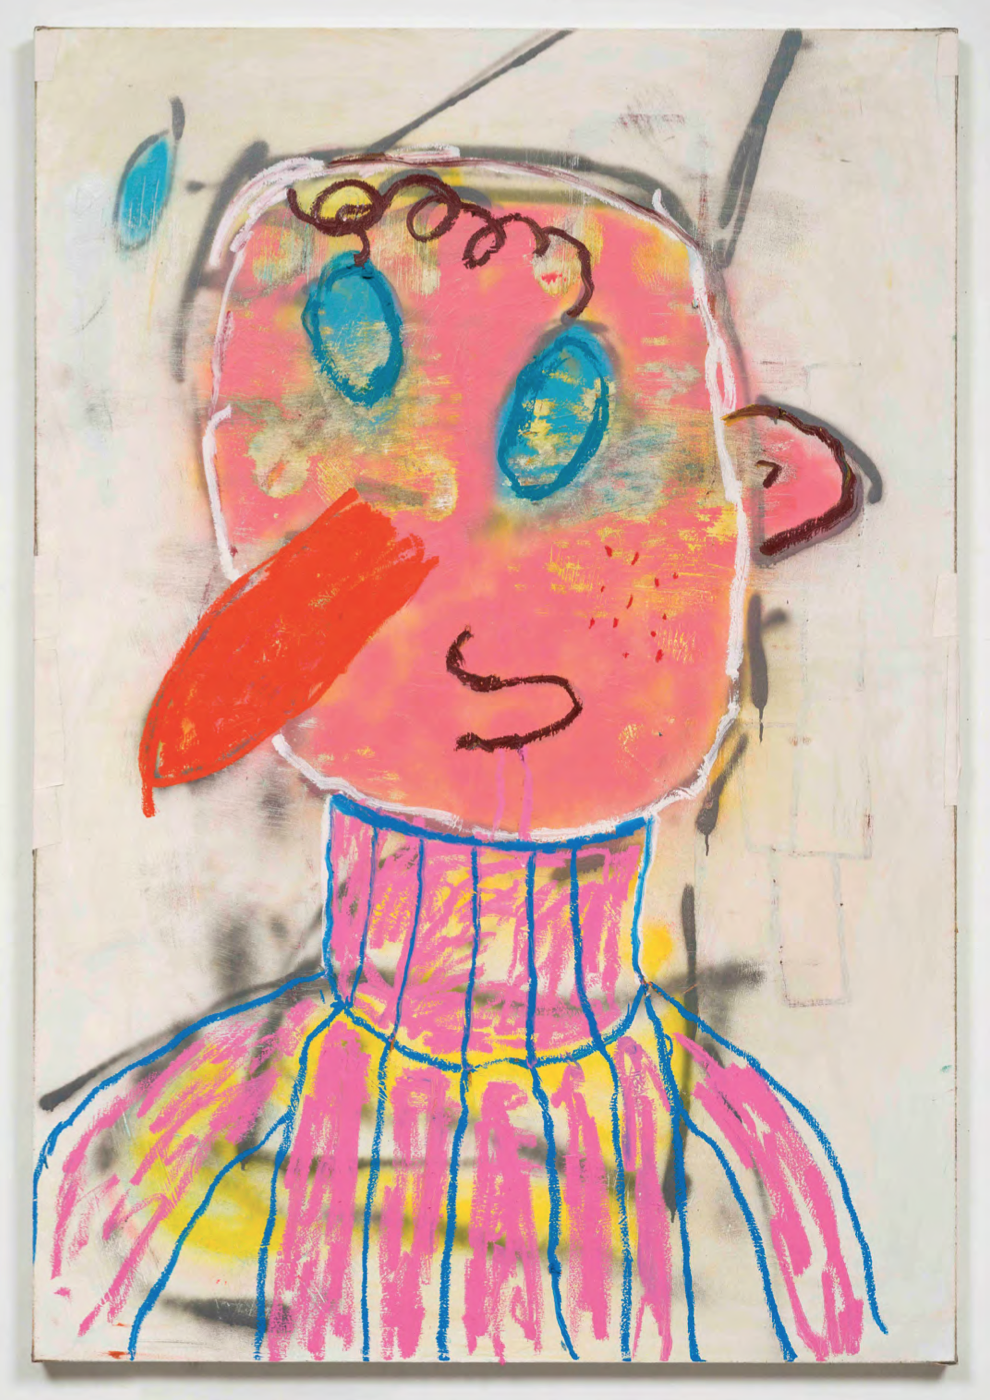 Marc Horowitz, Chad Augustine, 2015. Oil stick, gaffers tape, acrylic spray paint, marker on linen, 65 x 45 inches. Courtesy of the artist.